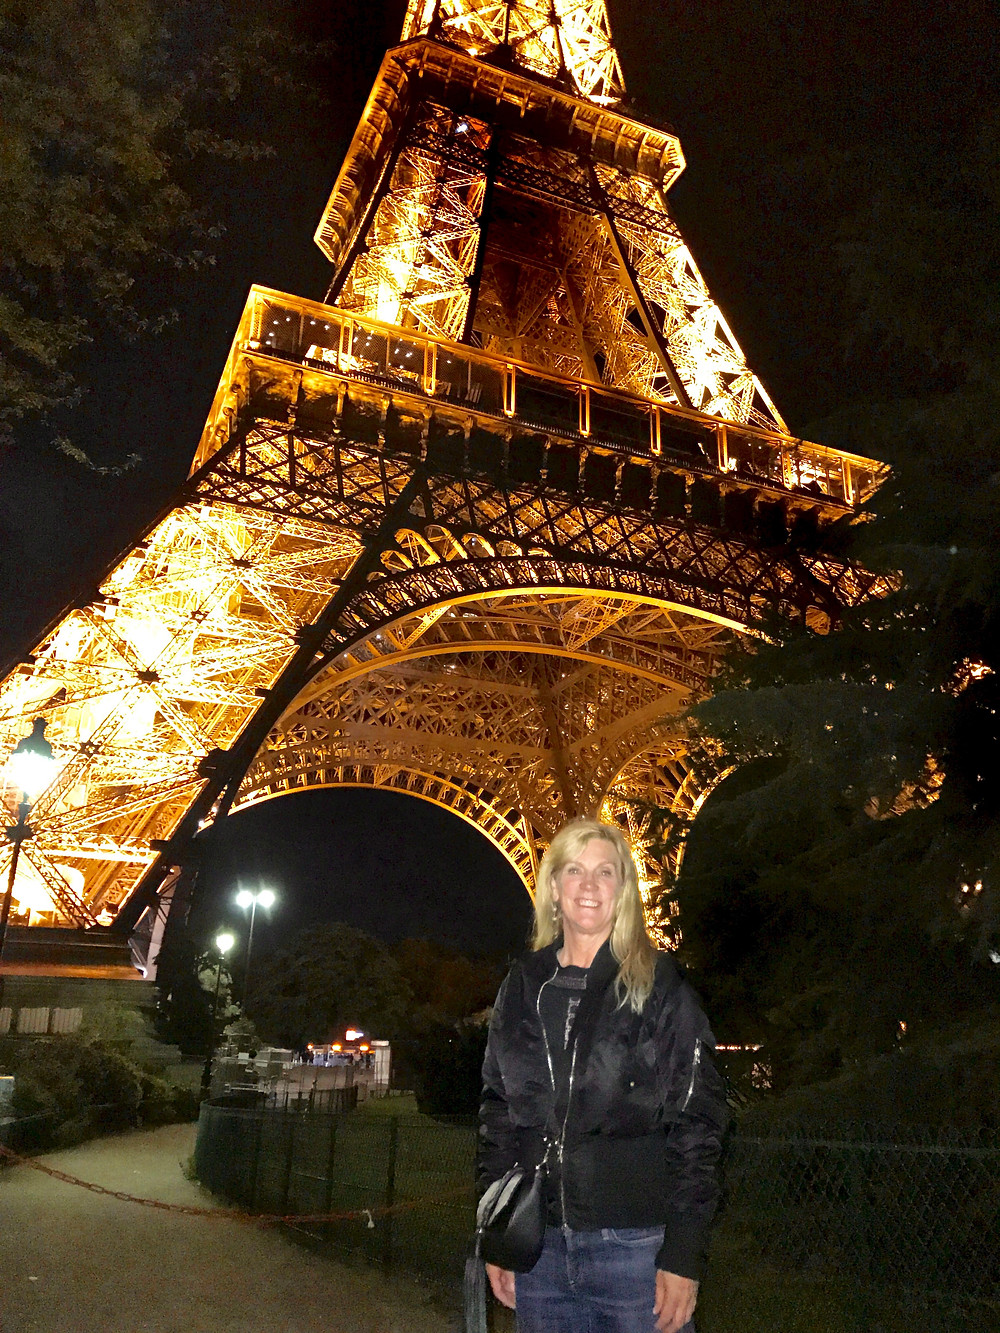 me enjoying the Eiffel Tower at night  before the glass wall was installed